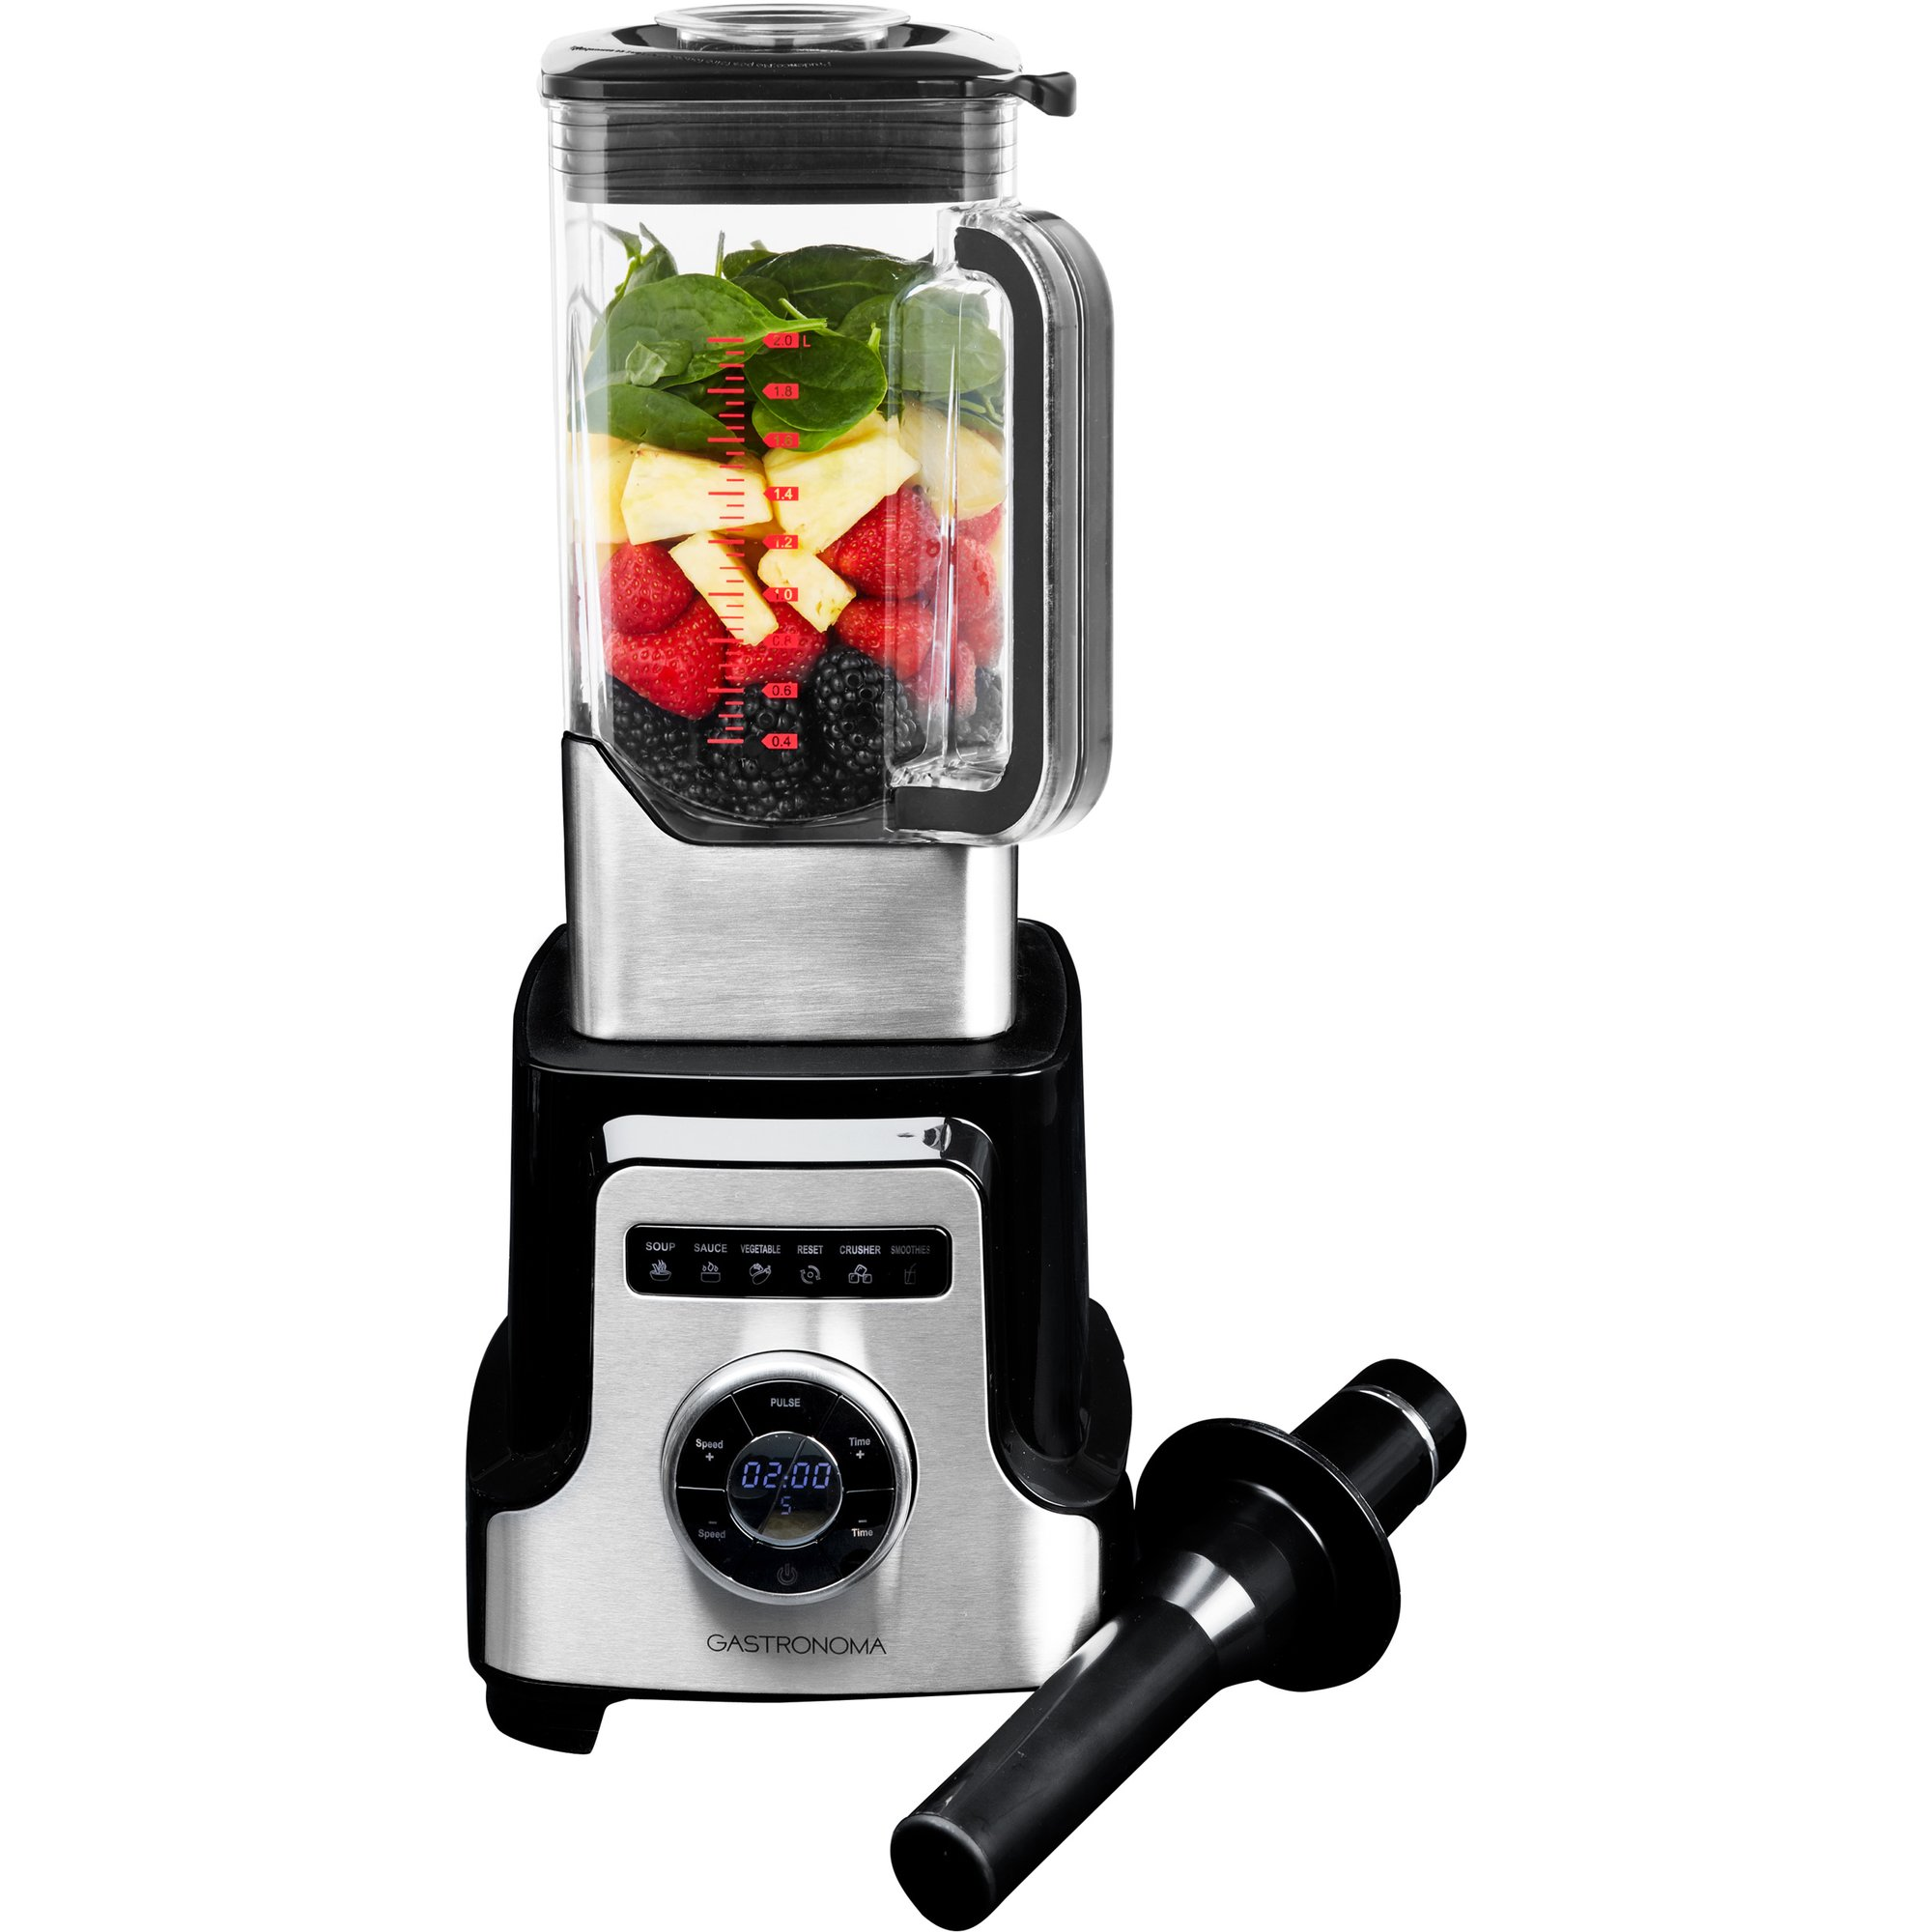 Gastronoma High Power Blender